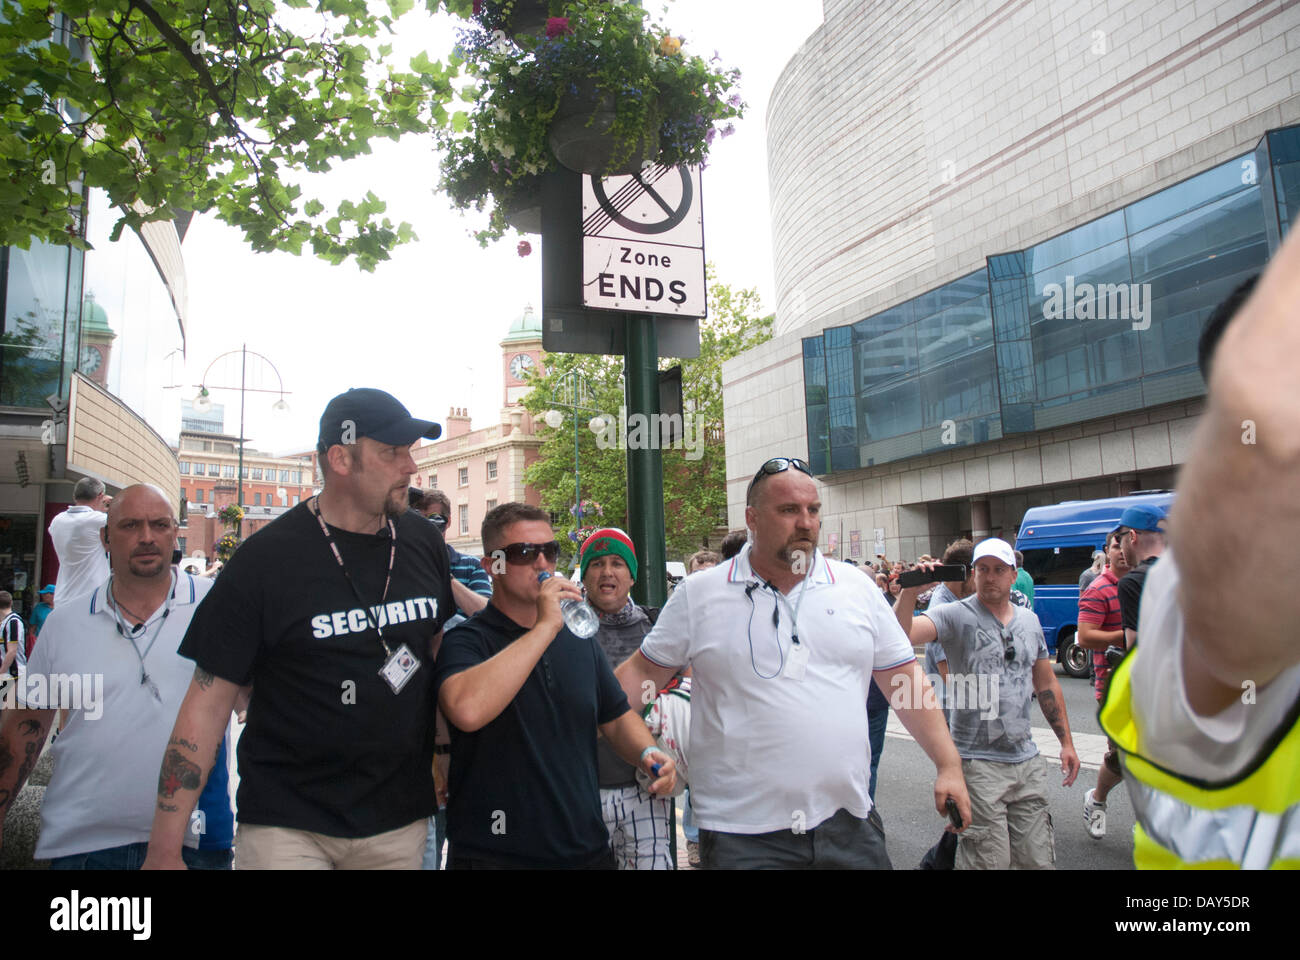 Birmingham, UK. 20th July, 2013. English Defence League leader Tommy Robinson (real name Stephen Yaxley-Lennon) - Stock Image